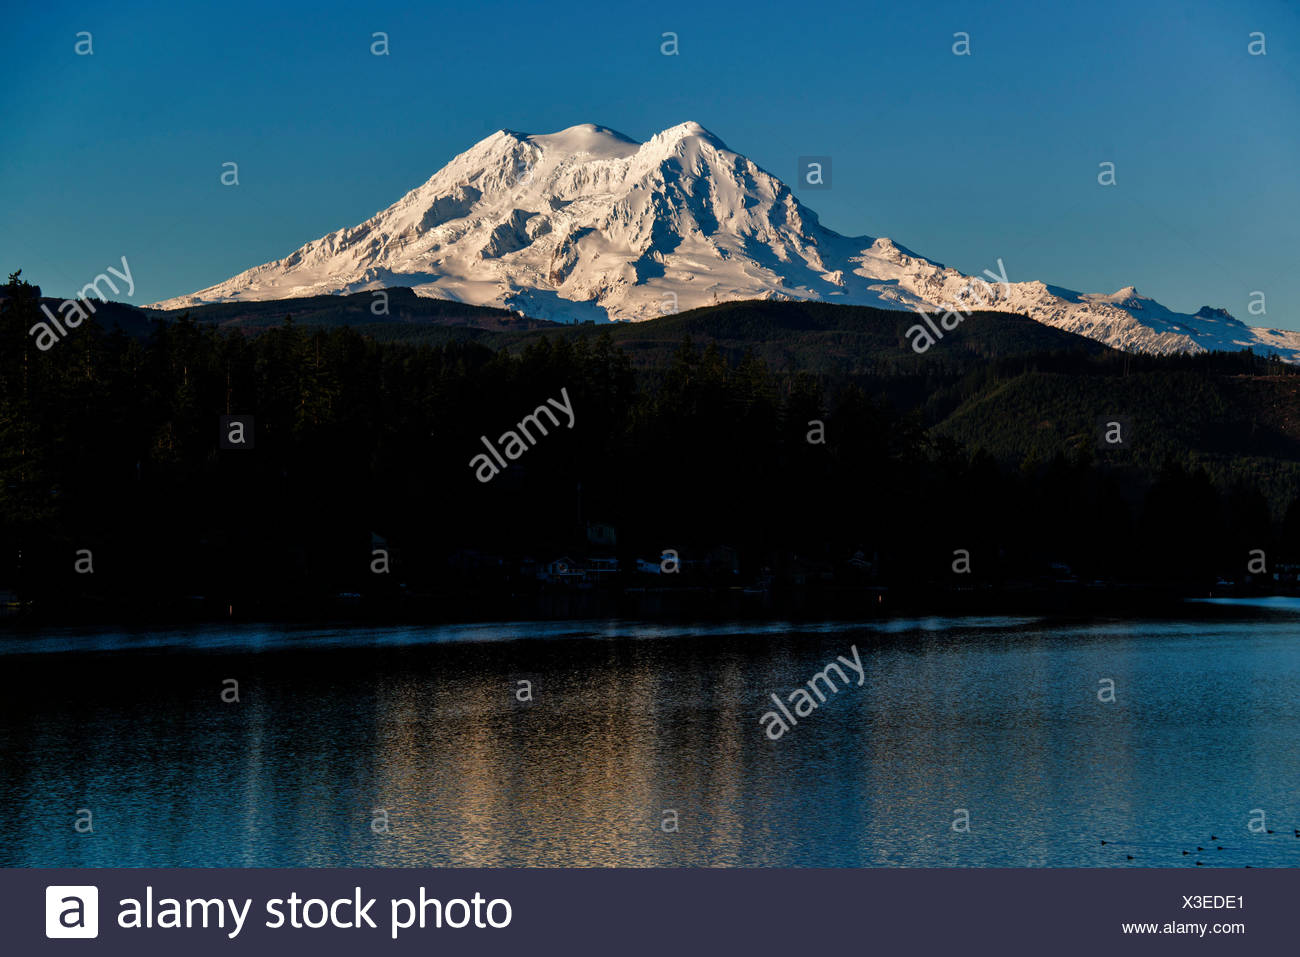 mount Shasta, clear lake, California, lake, USA - Stock Image